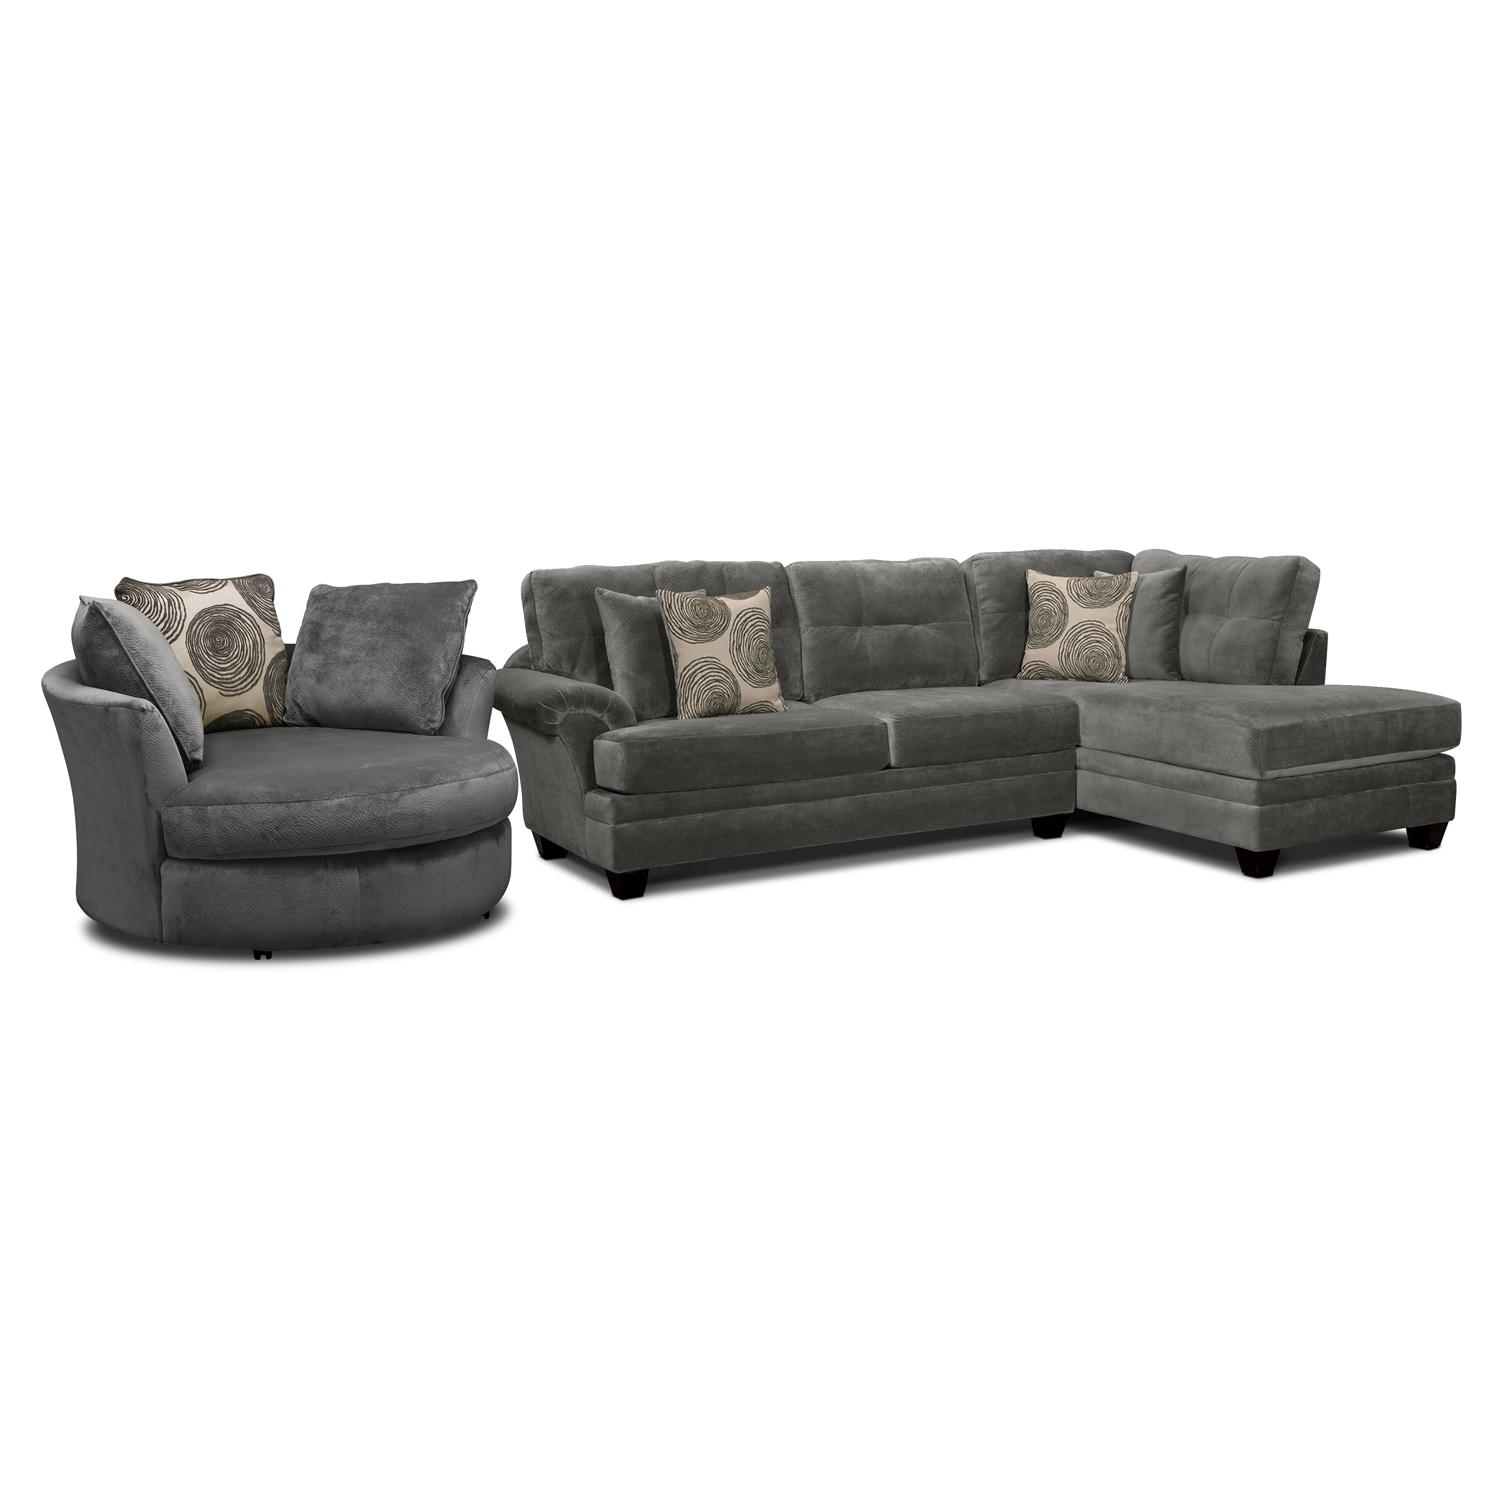 Cordelle 2-Piece Right-Facing Chaise Sectional and Swivel Chair Set - Gray